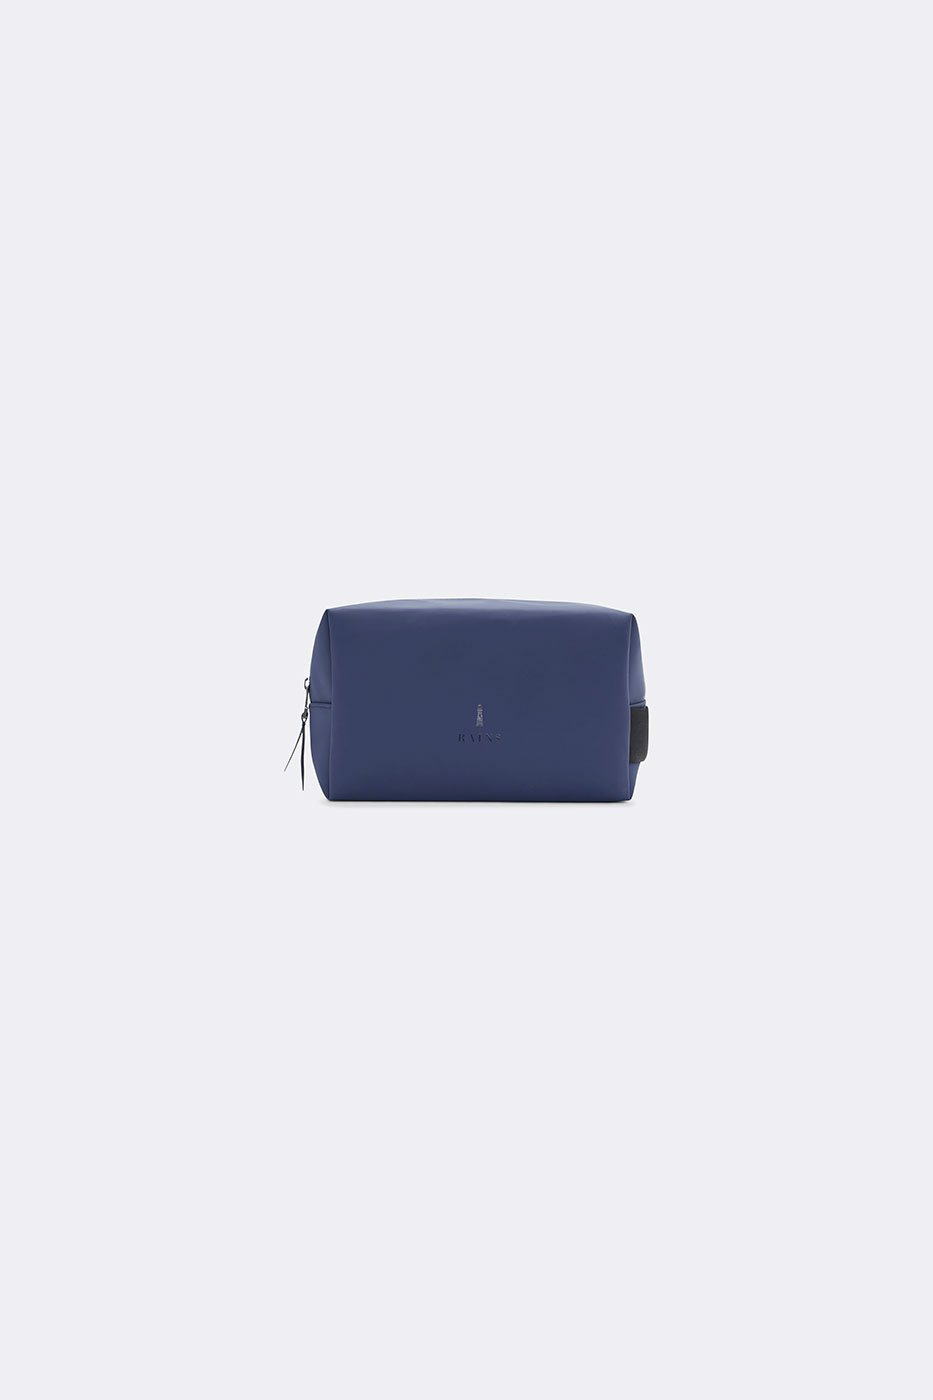 Wash_Bag_Small-Small_Accessories-1558-02_Blue_1400x1400